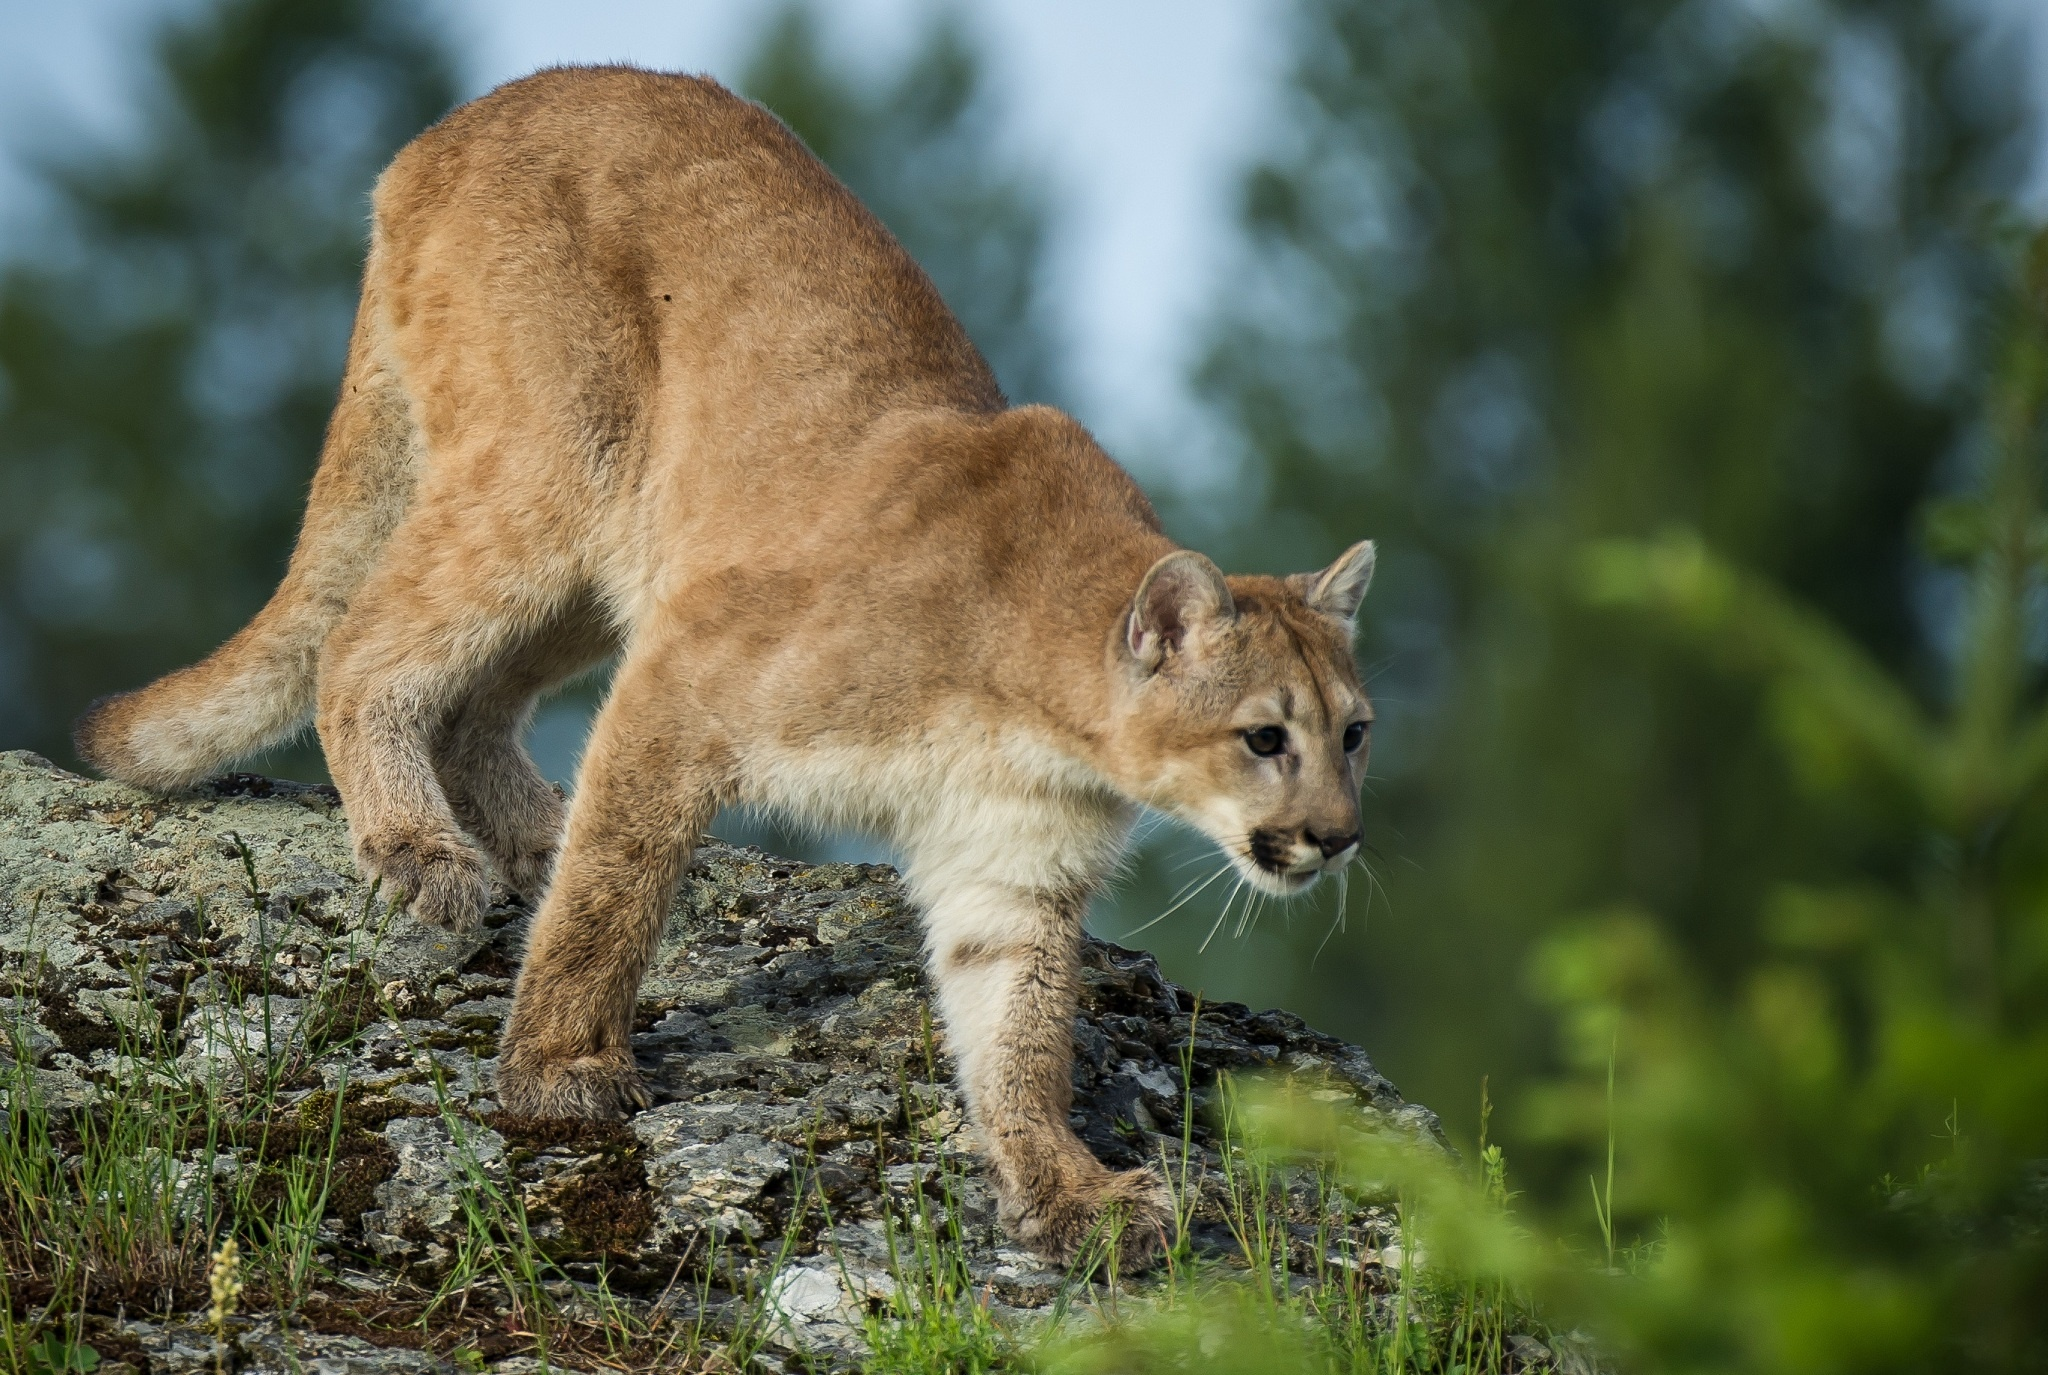 lake park cougar women Occasional sightings are reported in the region, but the lake george case was  the first confirmed cougar presence in the region since a small.